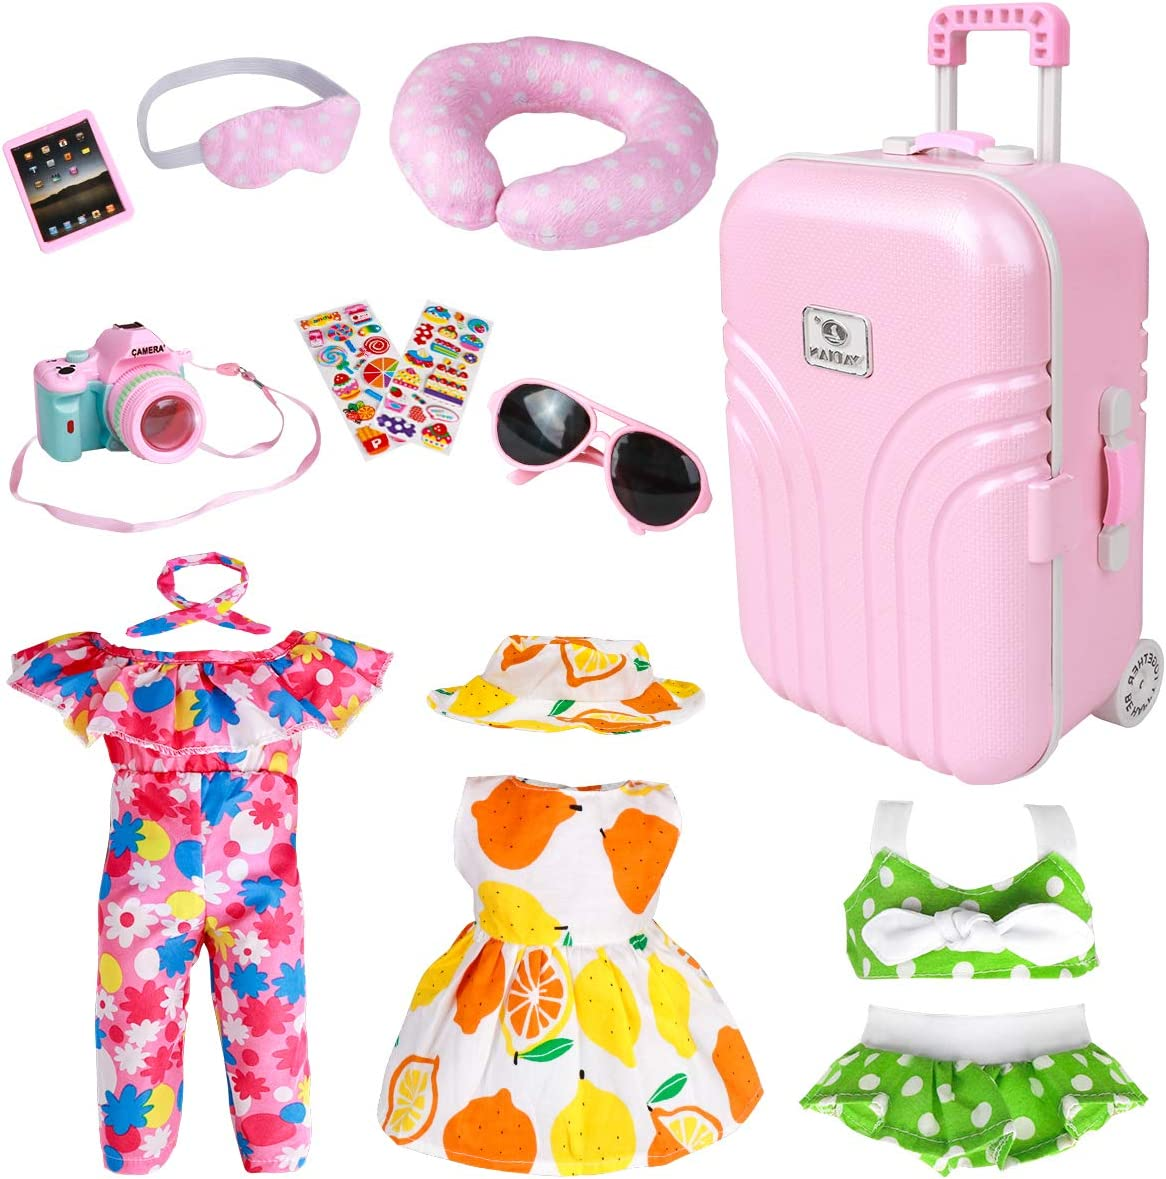 18 Inch Doll Travel Play Set - Doll Accessories with Carry on Suitcase Luggage, 3 Sets of Doll Clothes, Doll Travel Gear Play Set Fit American Girl